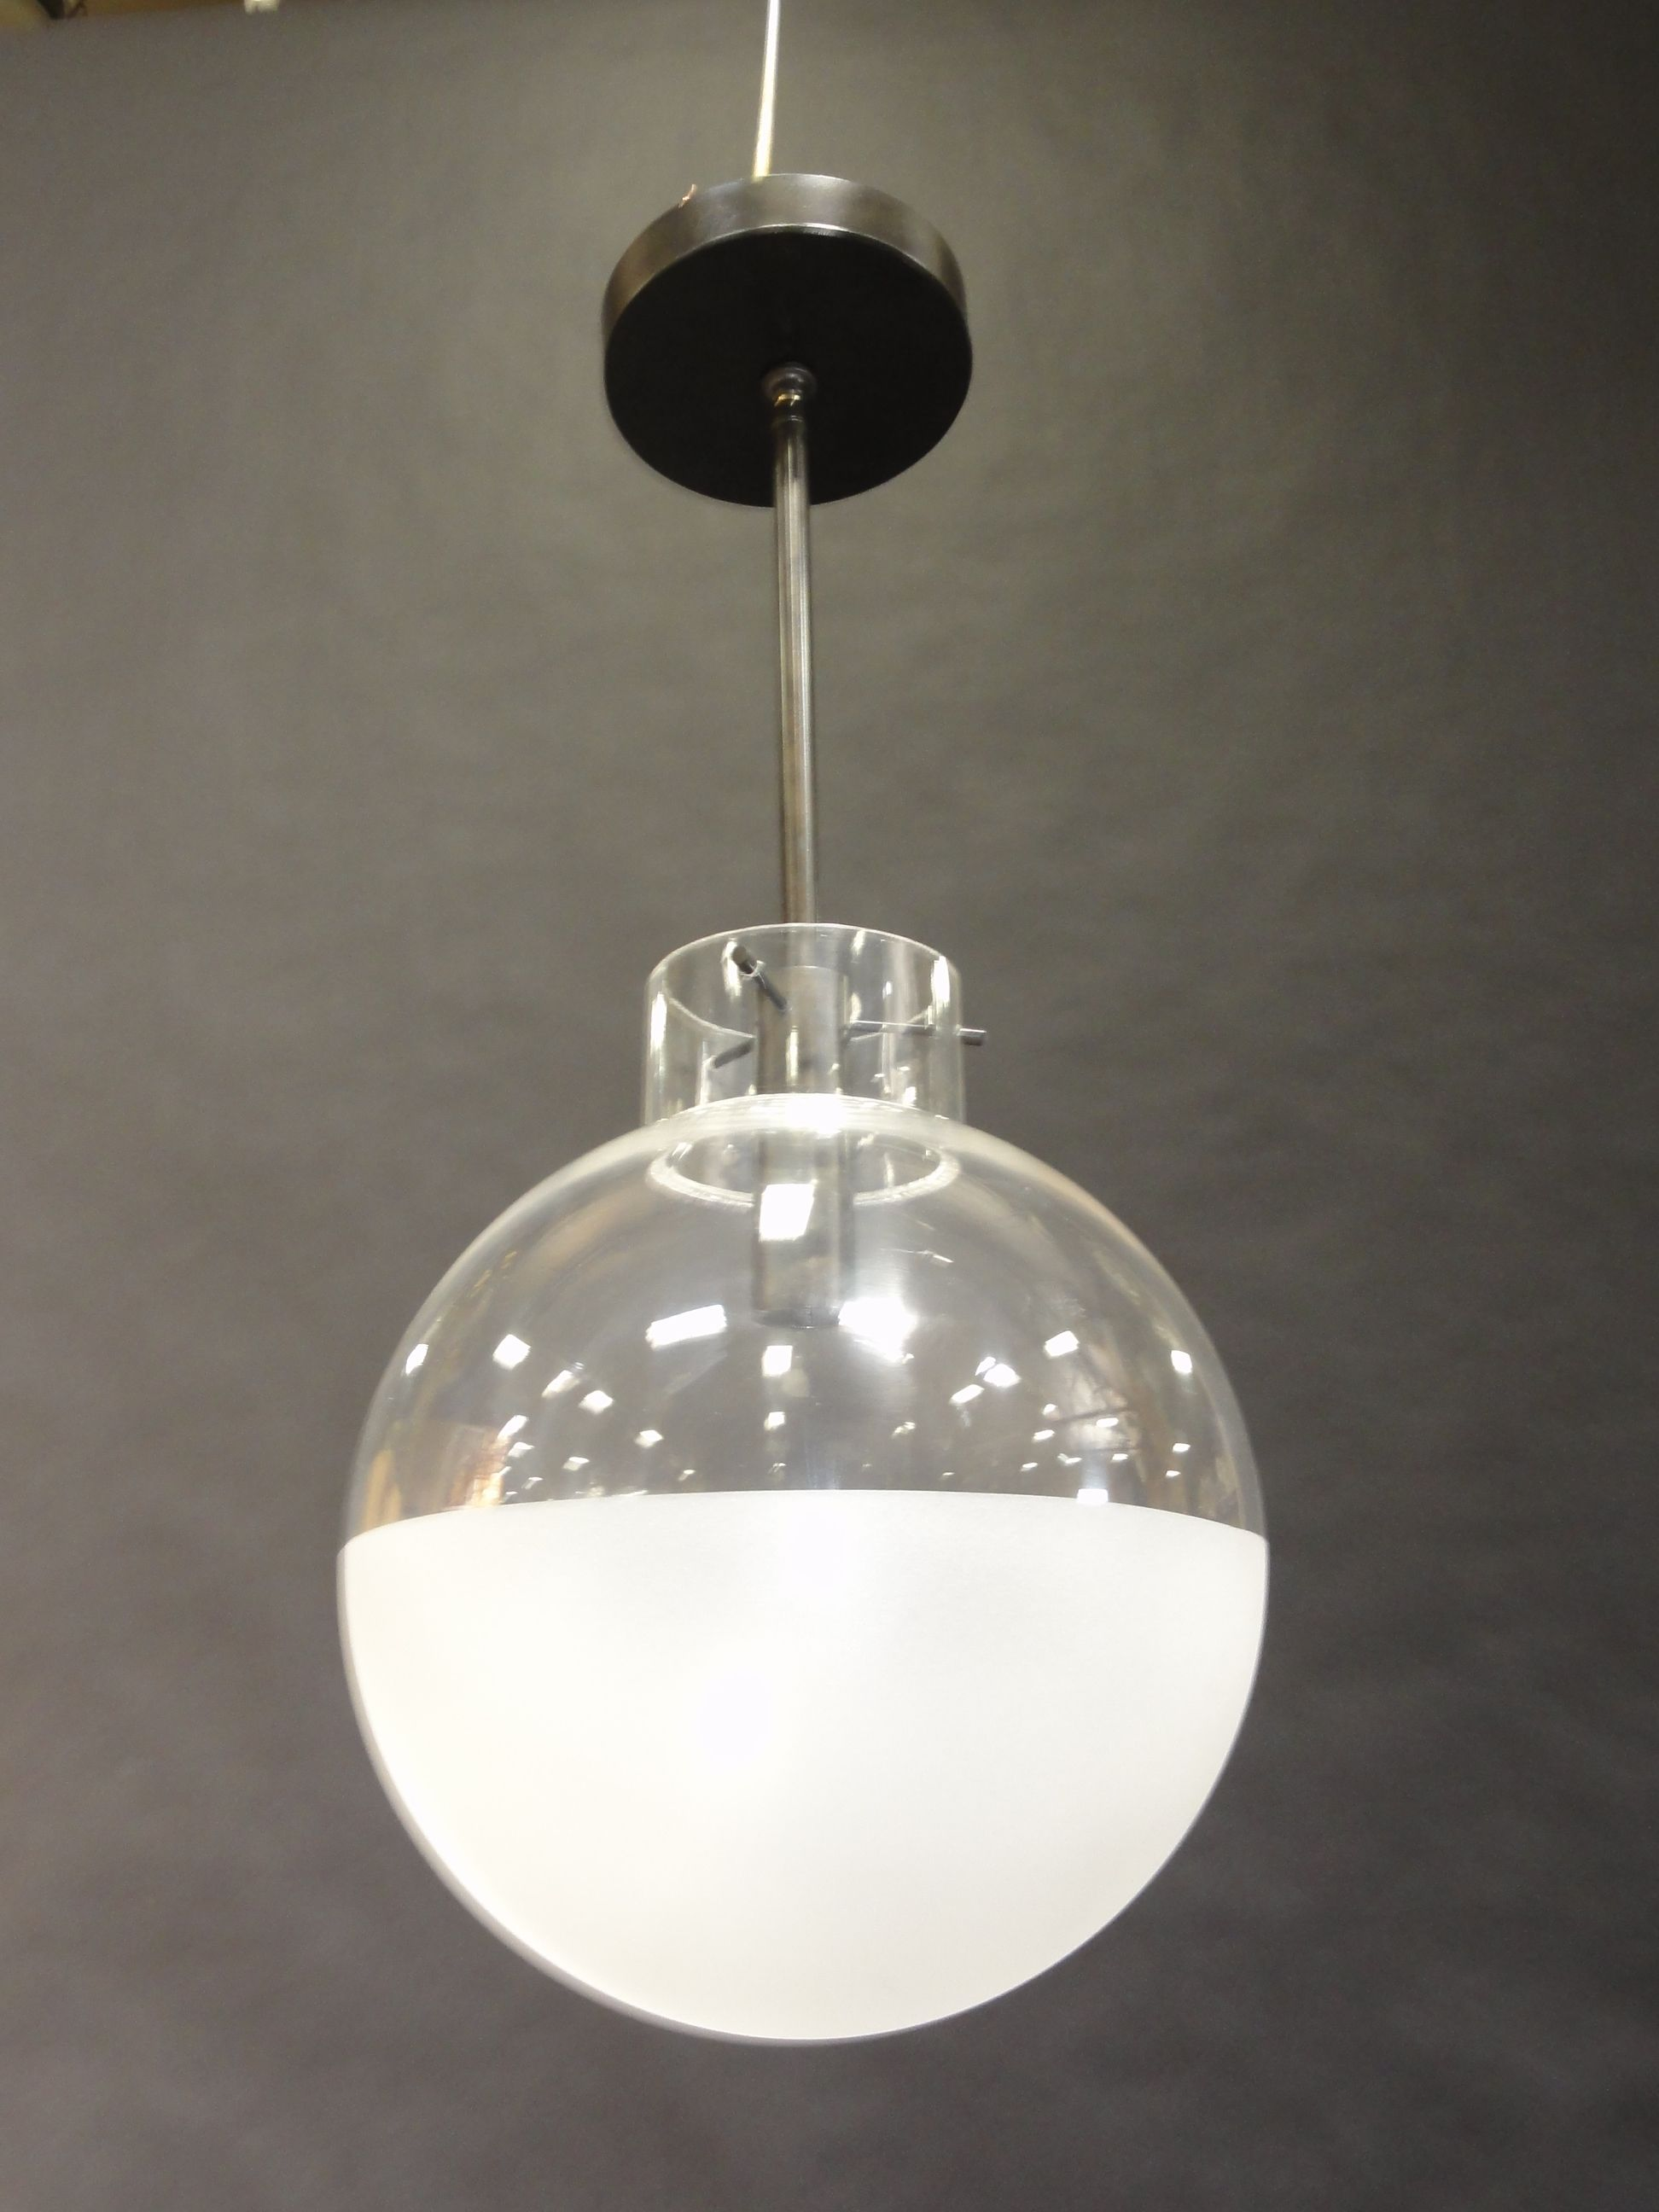 Clear & Frosted Glass Globe - Pendant Lighting - Polished